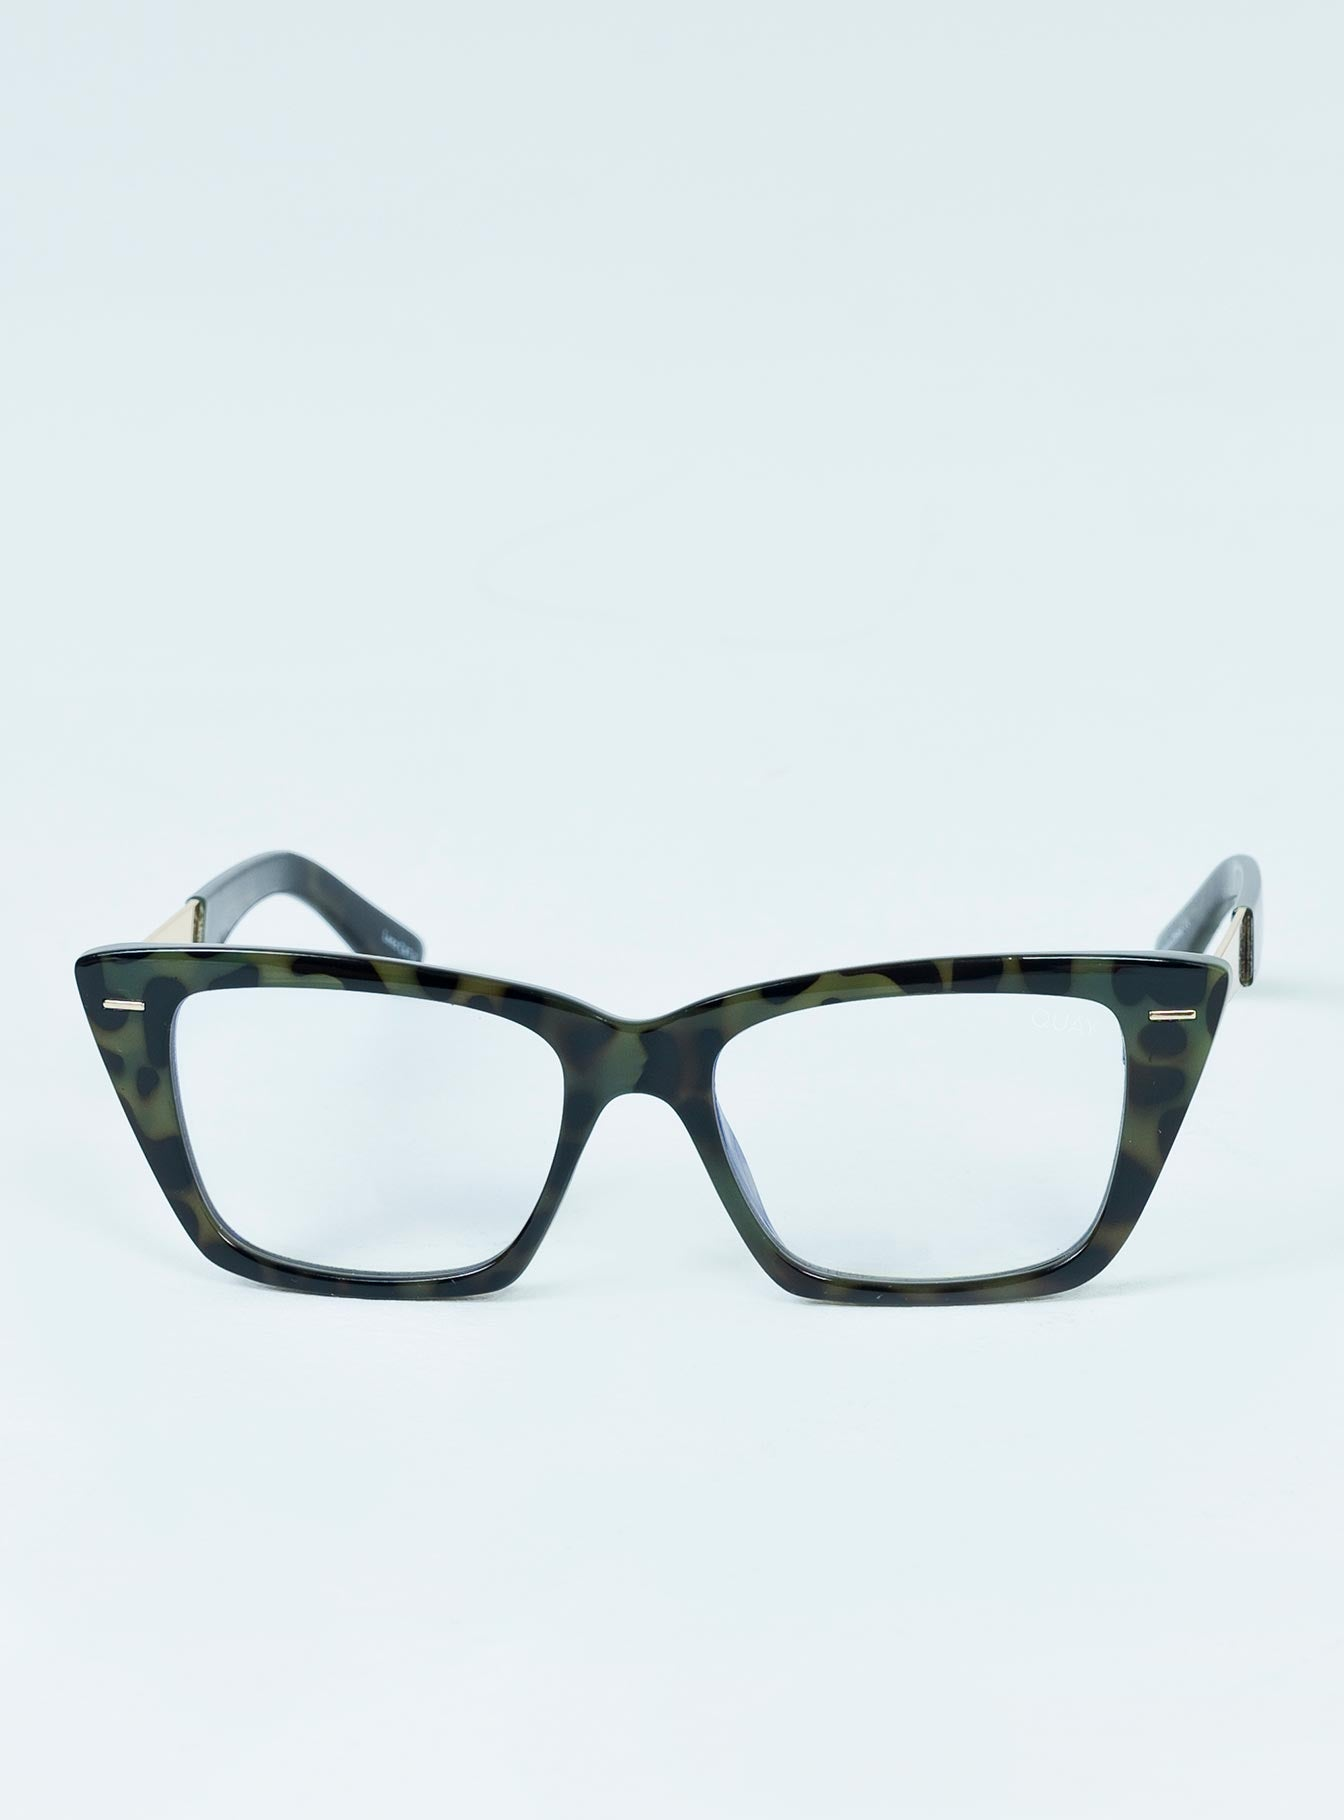 Quay Australia Prove It Blue Light Glasses Green Tort